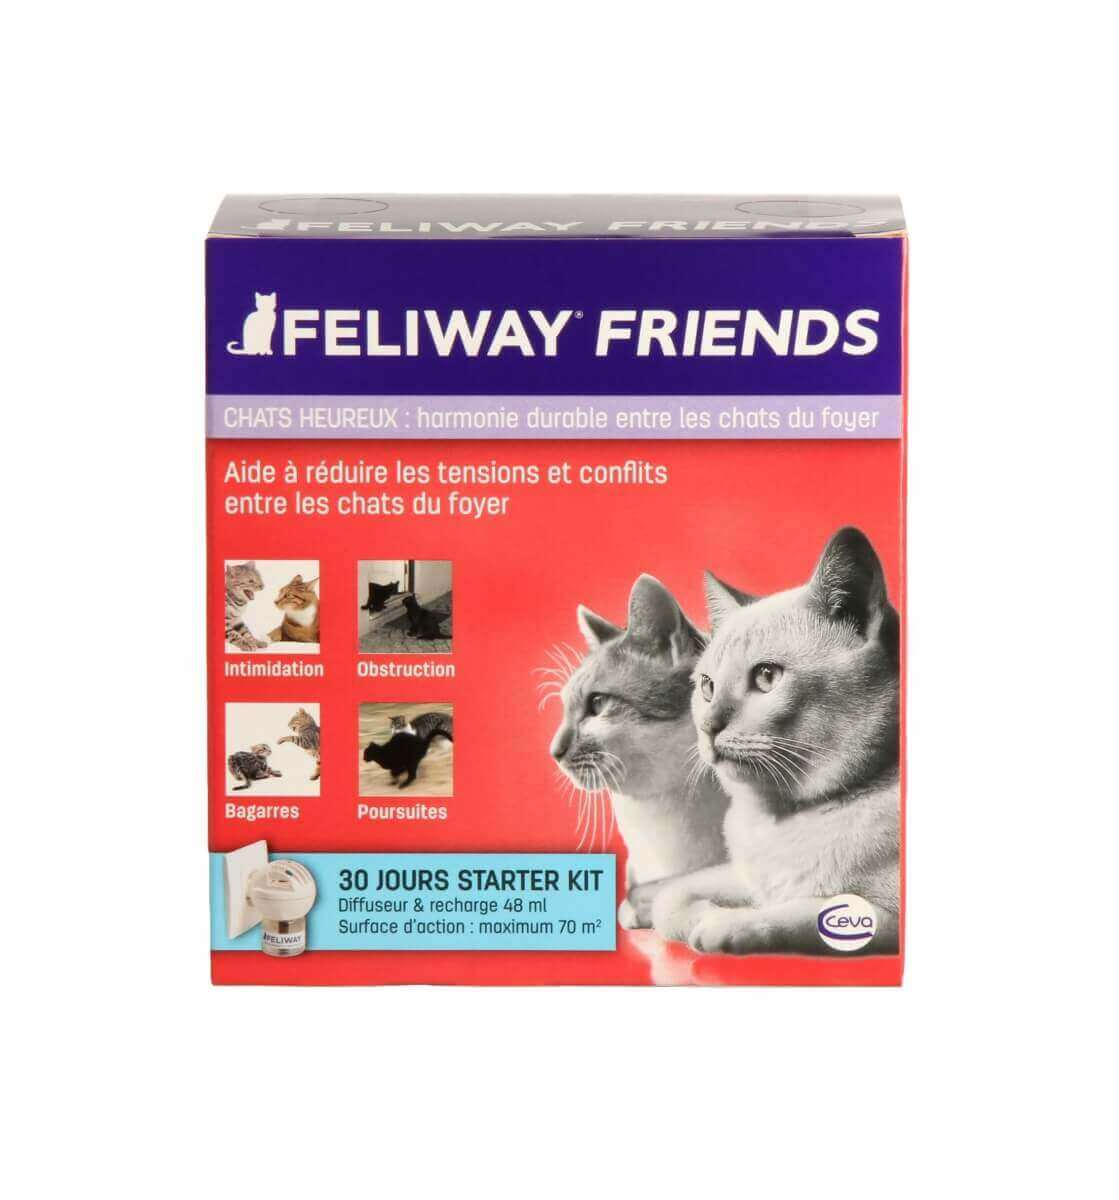 FELIWAY Friends Diffuseur - Facilite la cohabitation entre chats_4